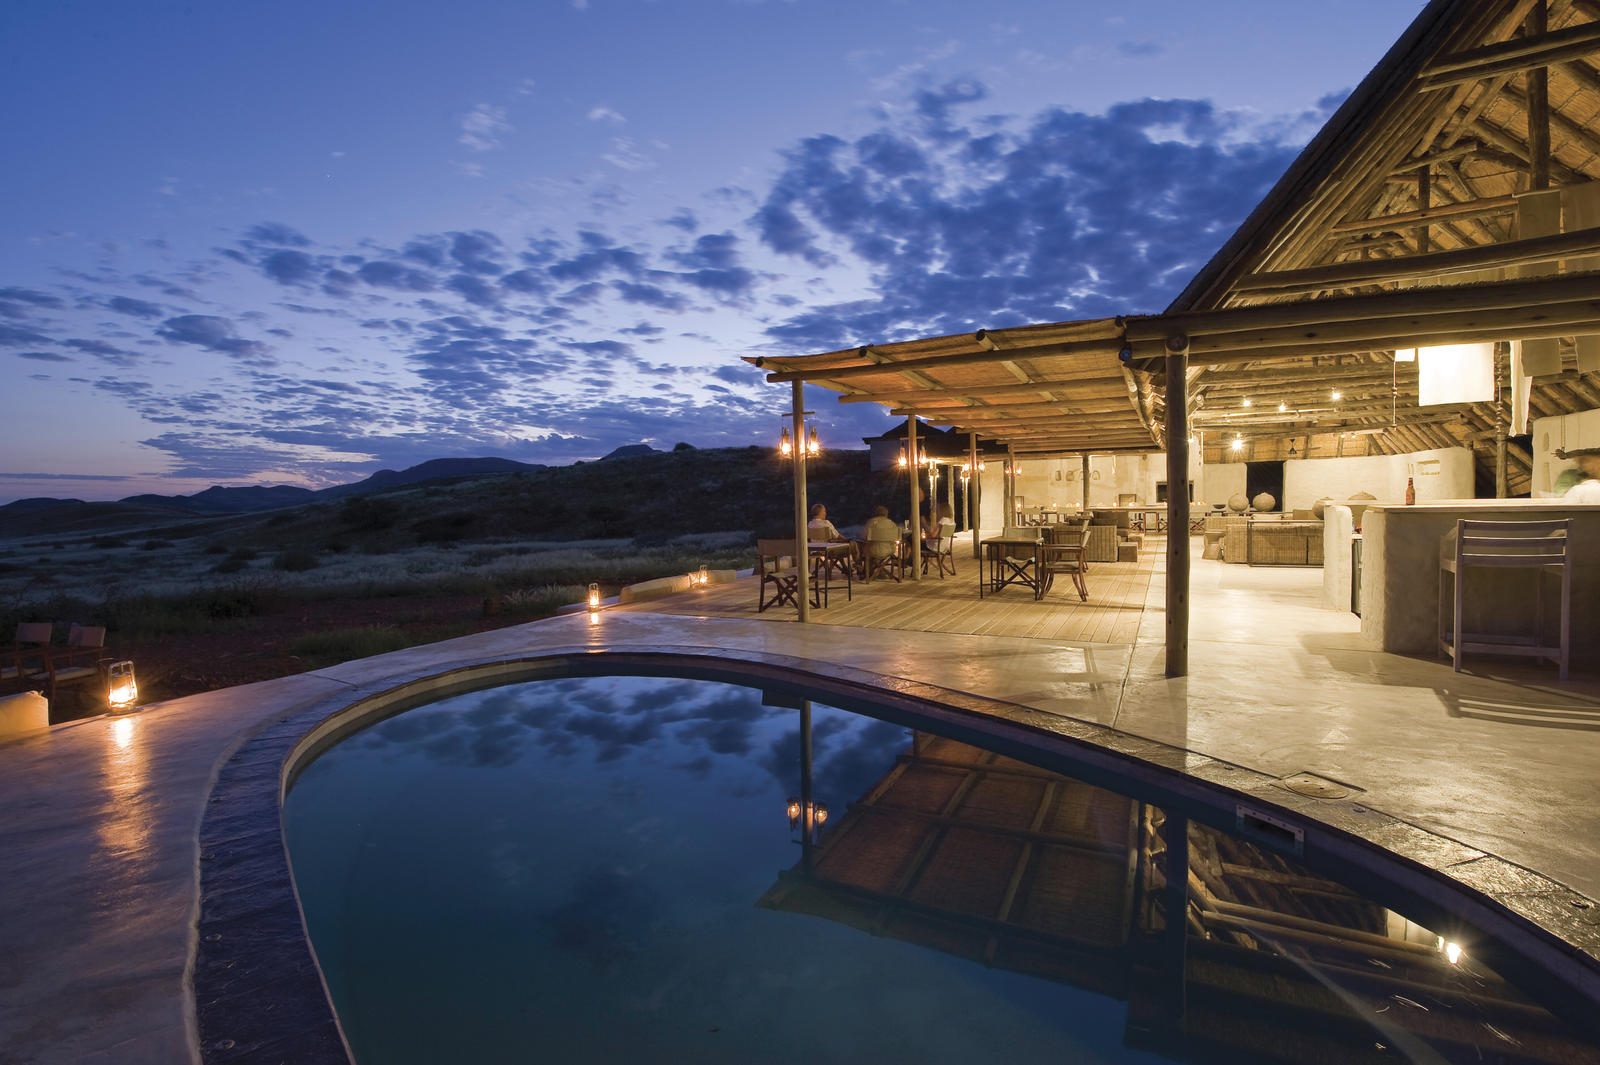 Damaraland_camp_pool_at_sunset_(c)_dana_allen